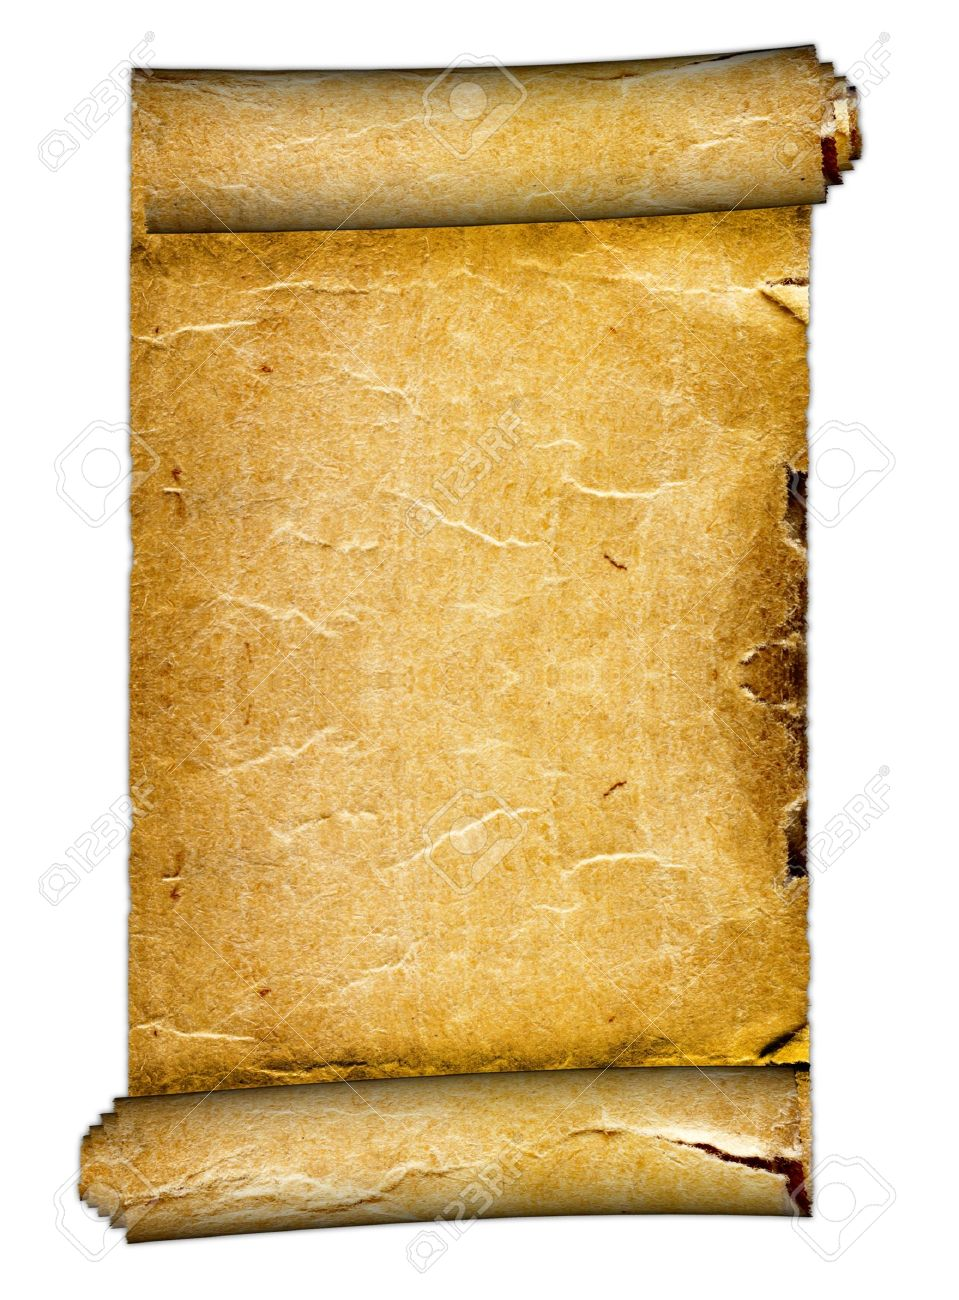 a old blank scroll on the white backgrounds stock photo, picture, Powerpoint templates